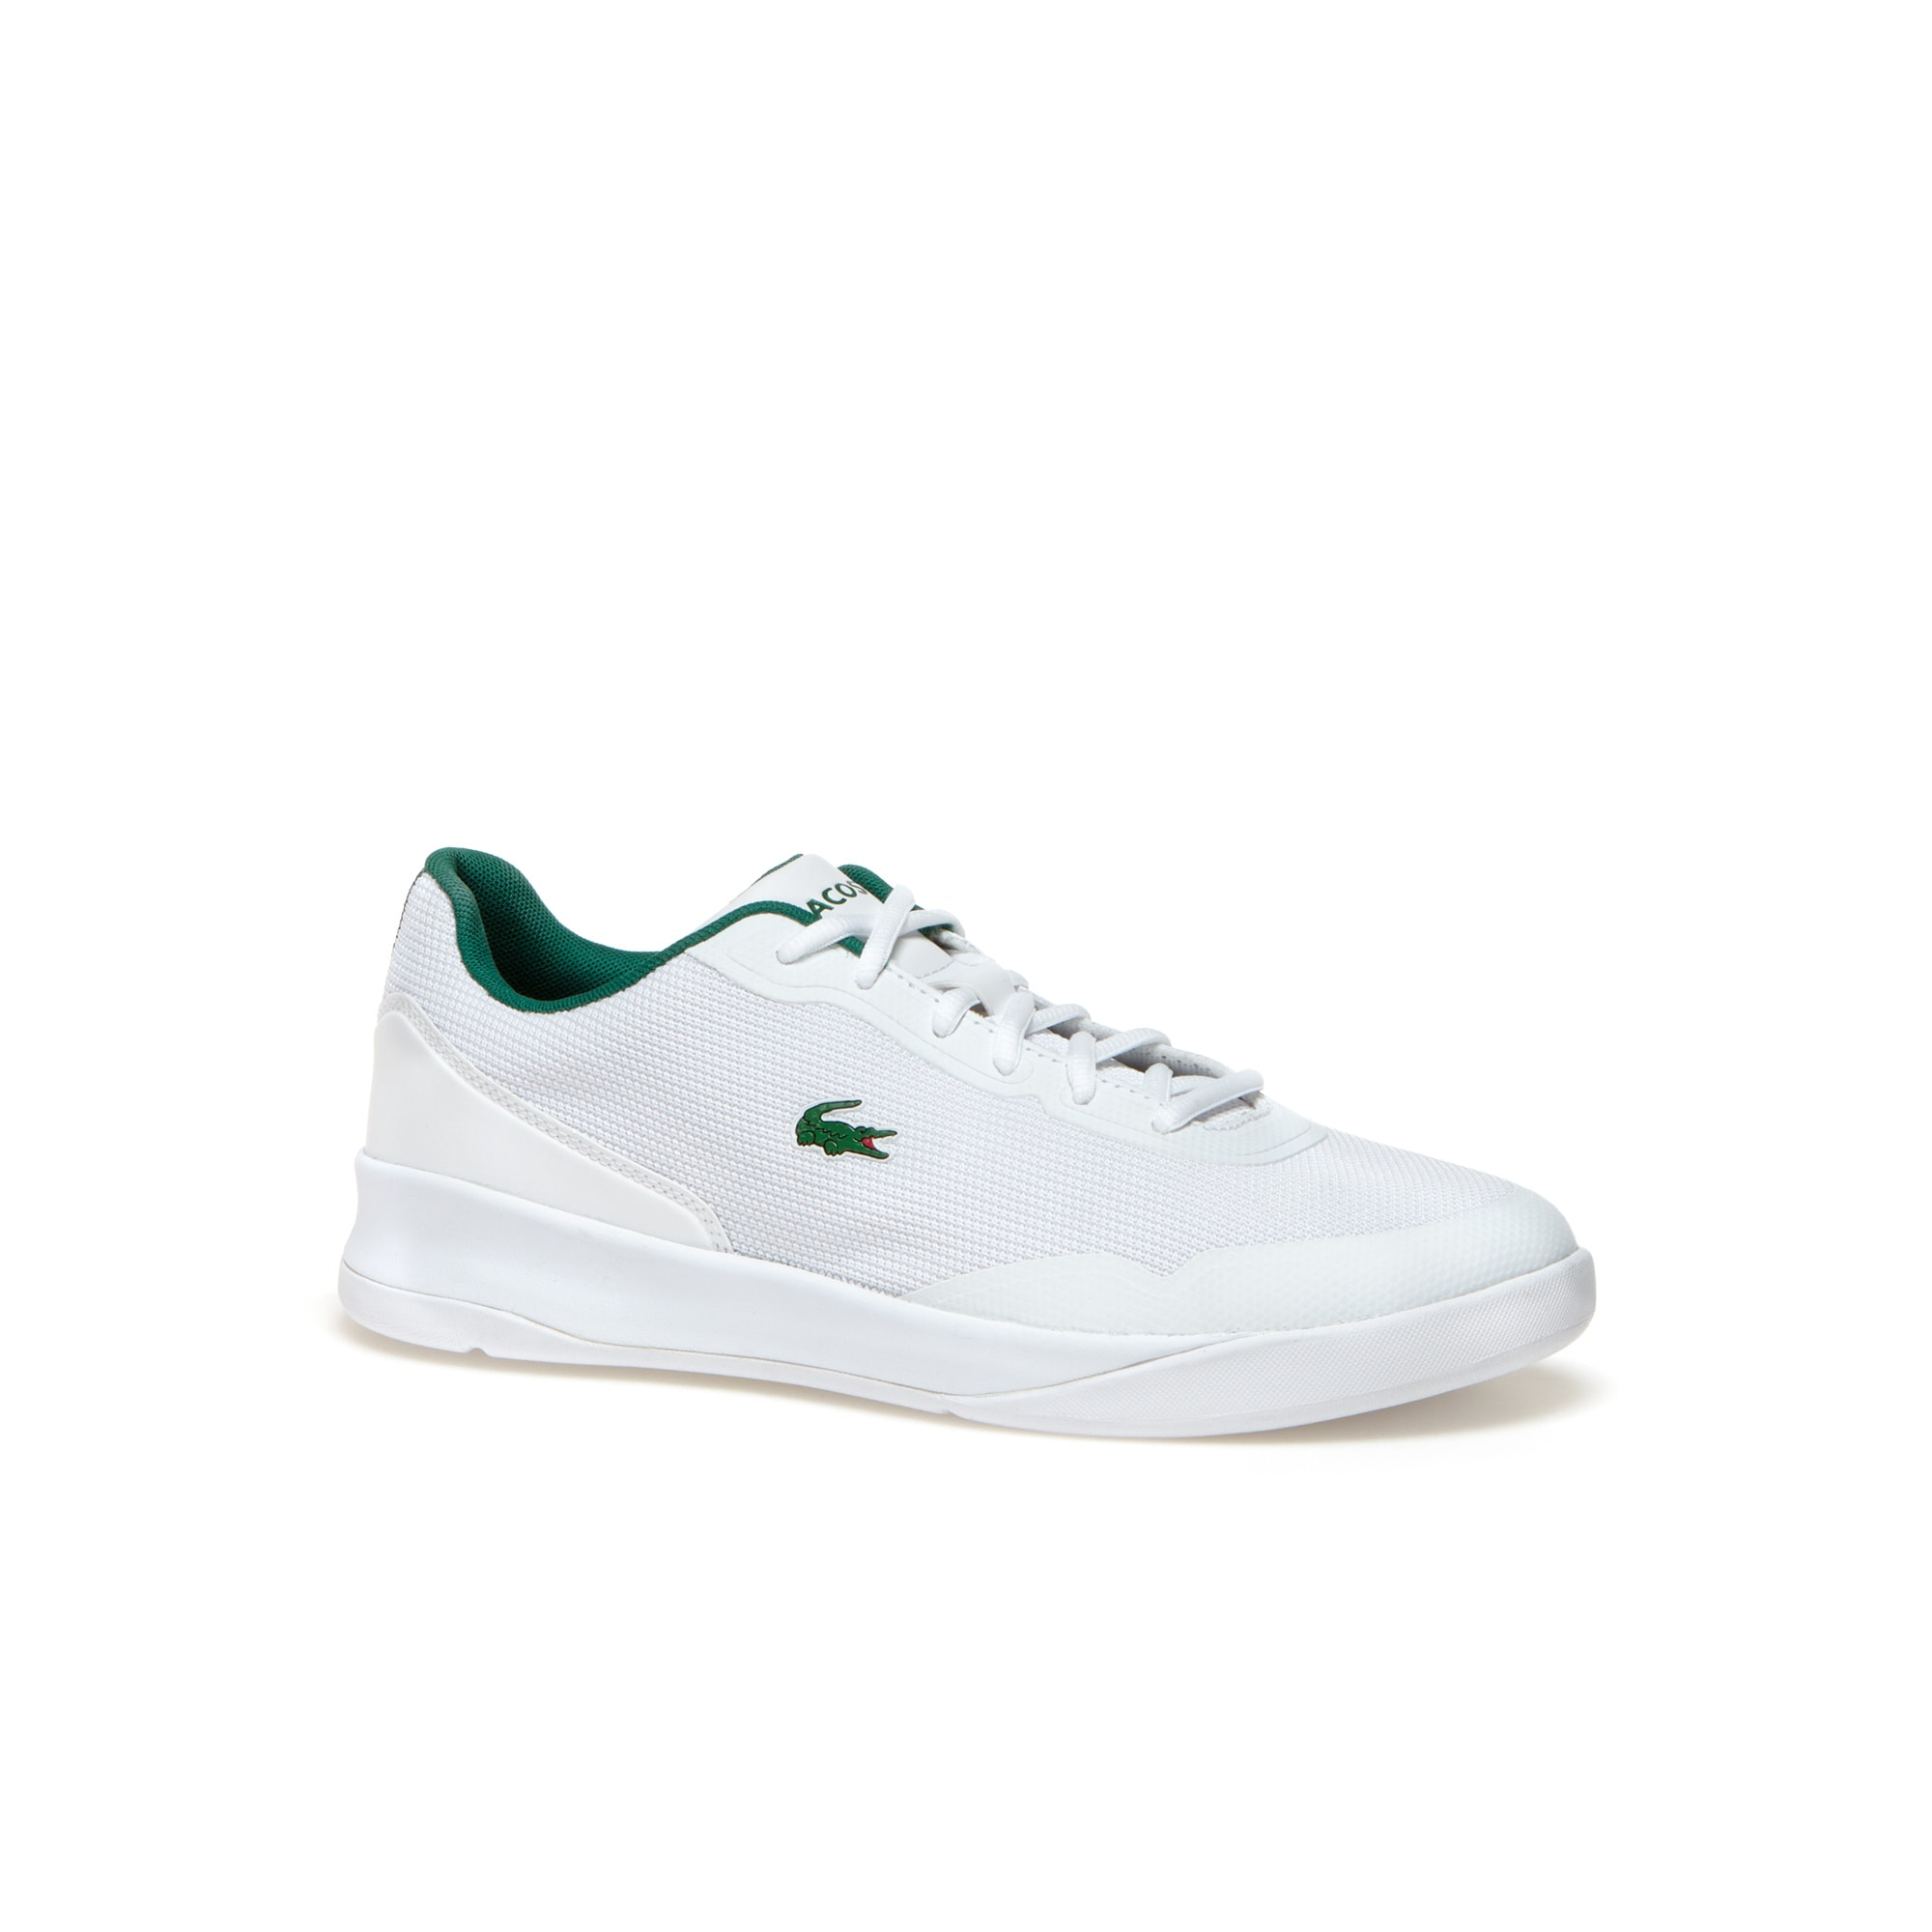 Men's LT Spirit Piqué Canvas Sneakers